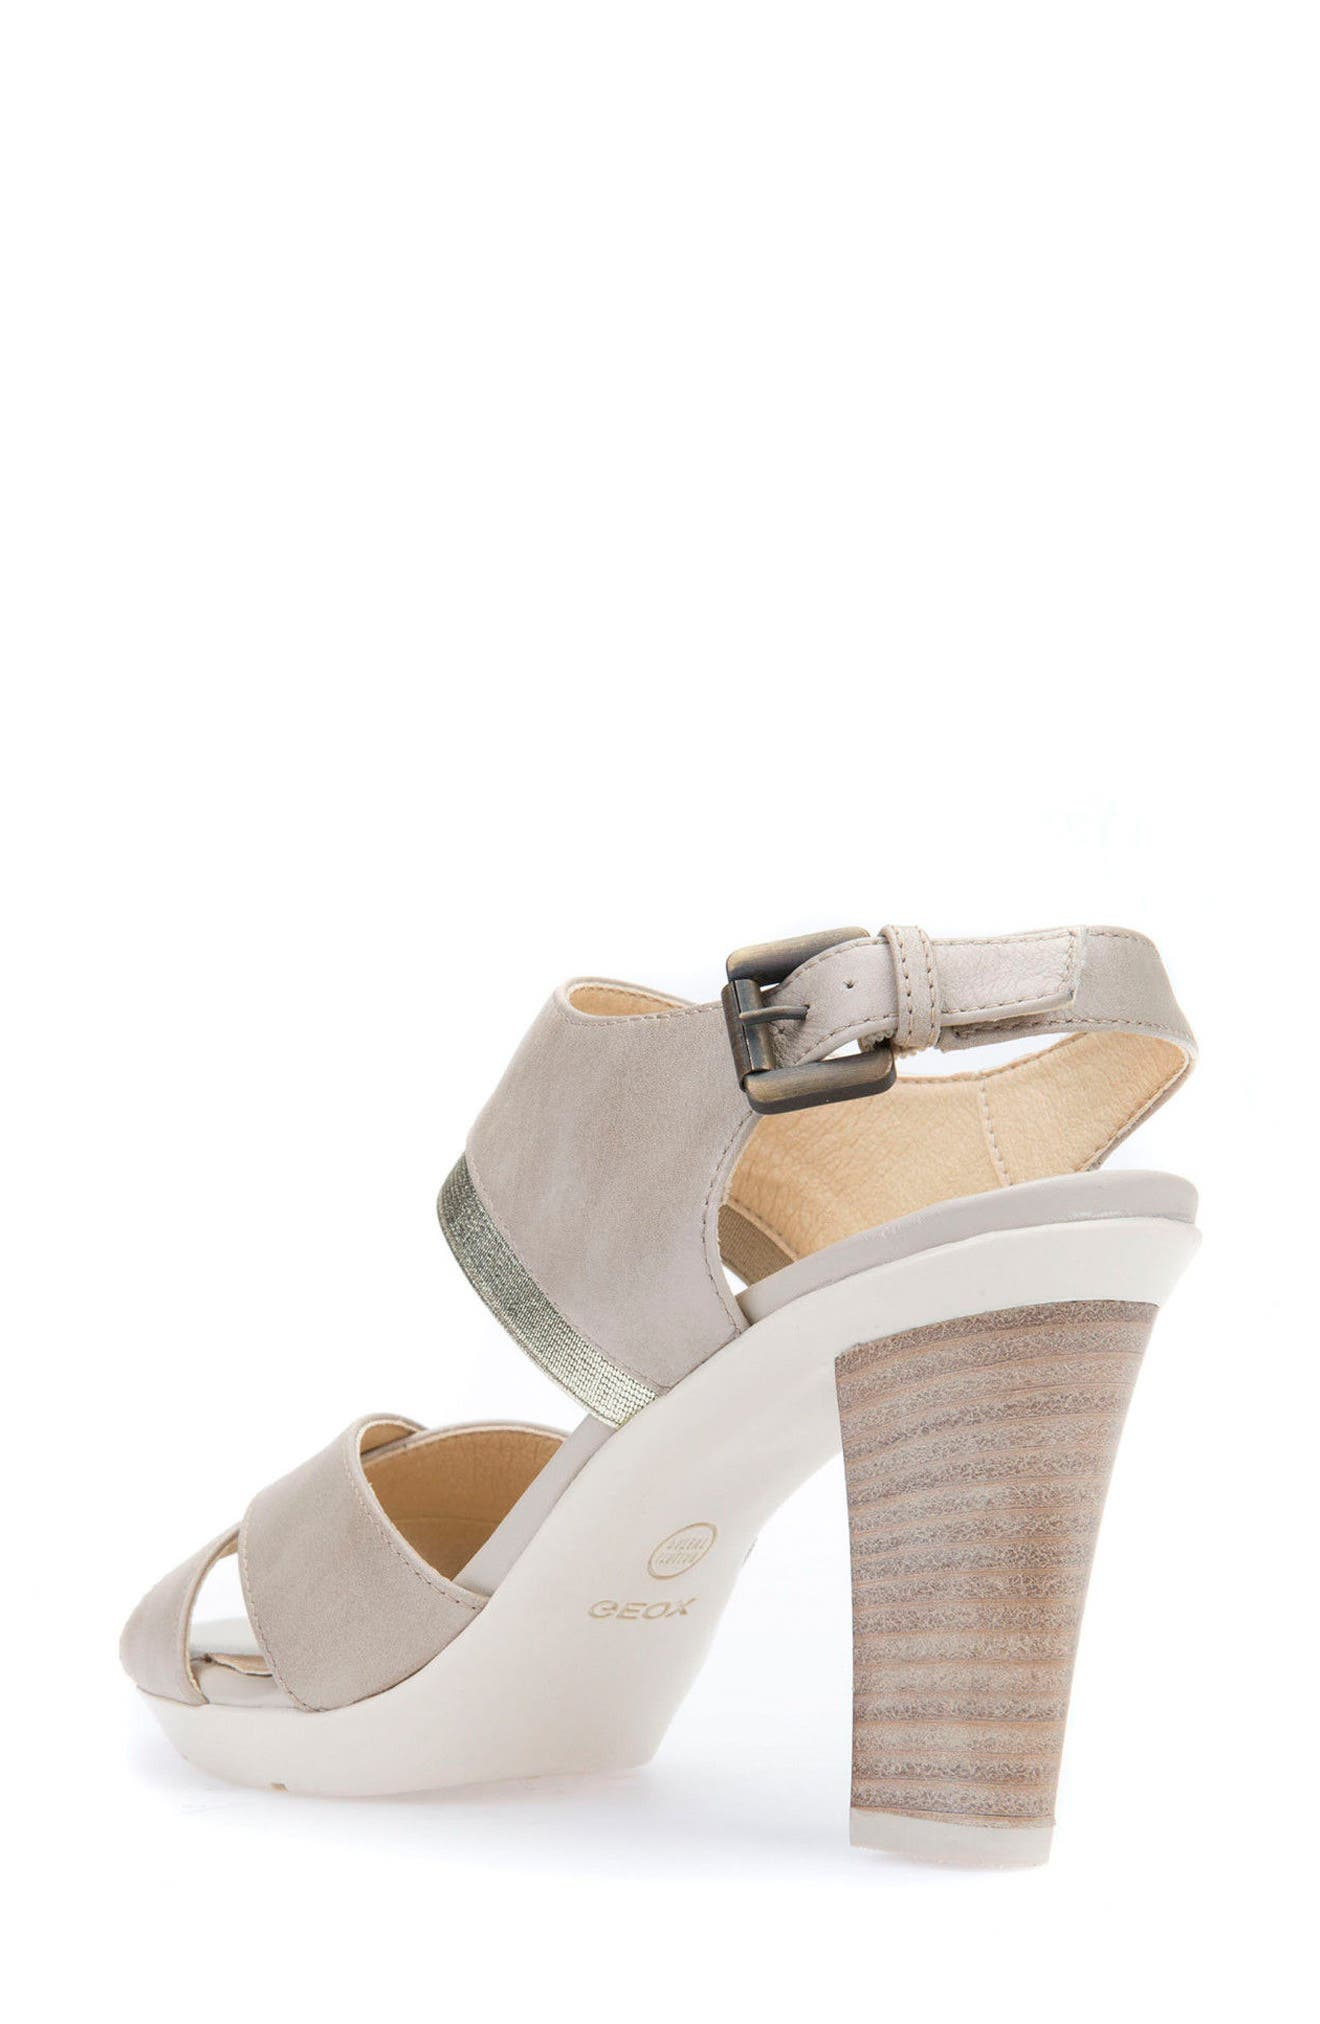 Jadlis Sandal,                             Alternate thumbnail 2, color,                             BEIGE LEATHER